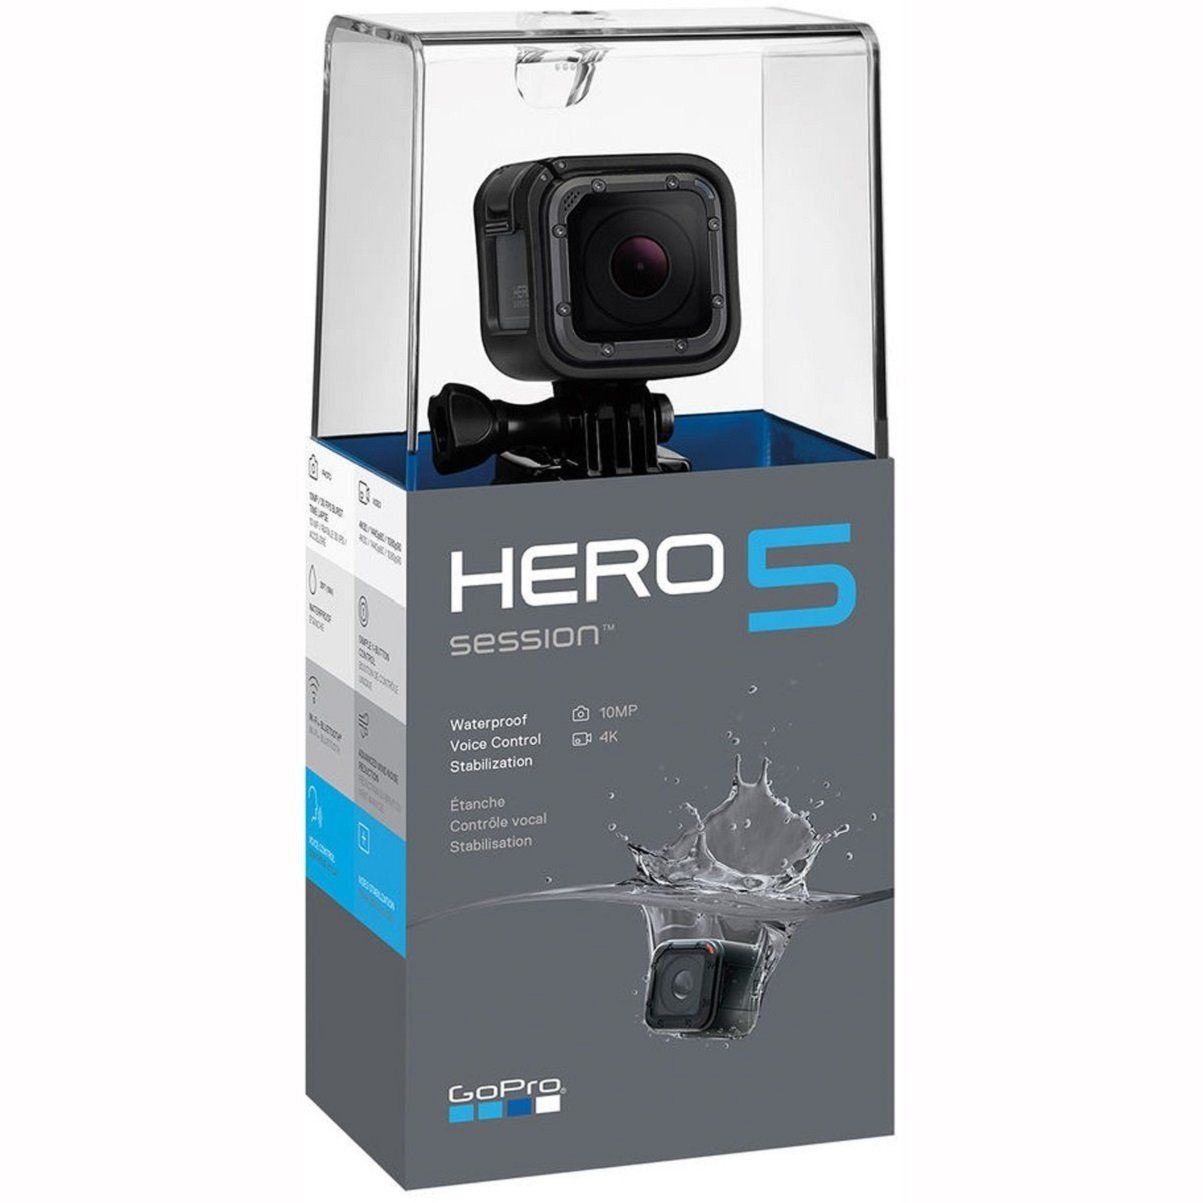 GoPro Hero5 Session Model 4K Extraordinarily HD, Wi-Fi Water resistant Exercise Digicam -**NEW**